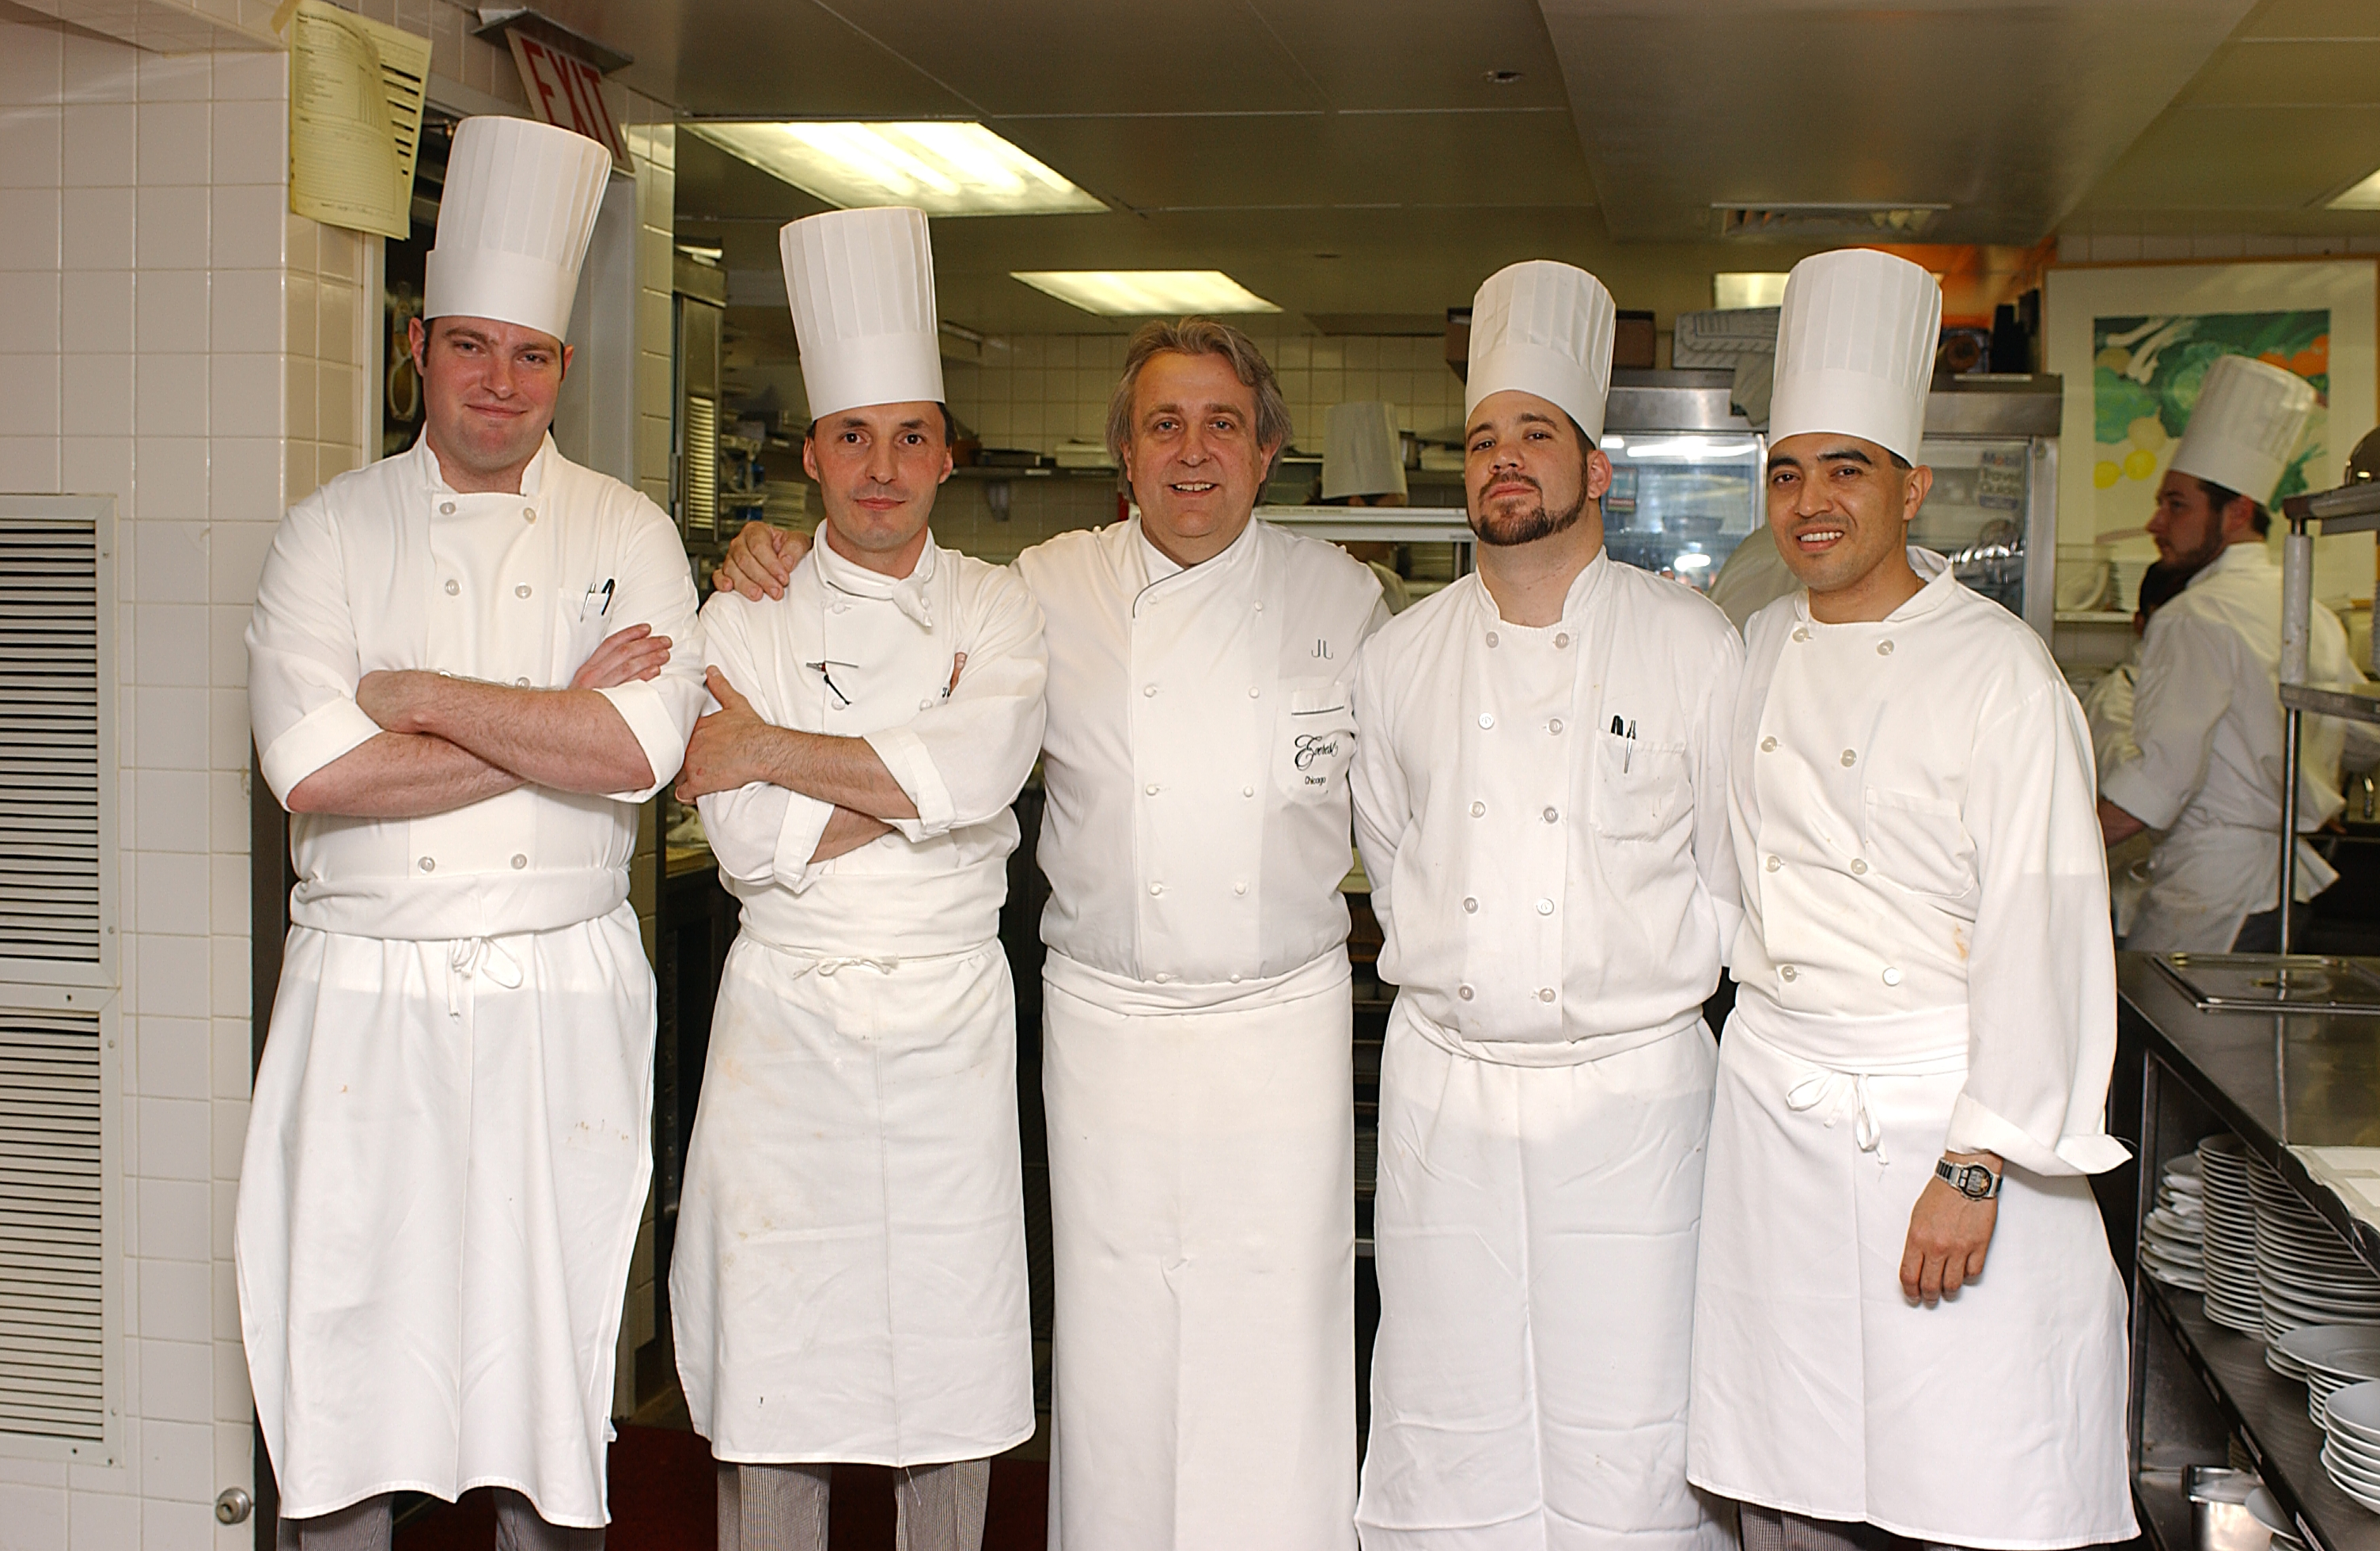 A line of chefs in the kitchen of Everest with Joho in the middle with his arms around him